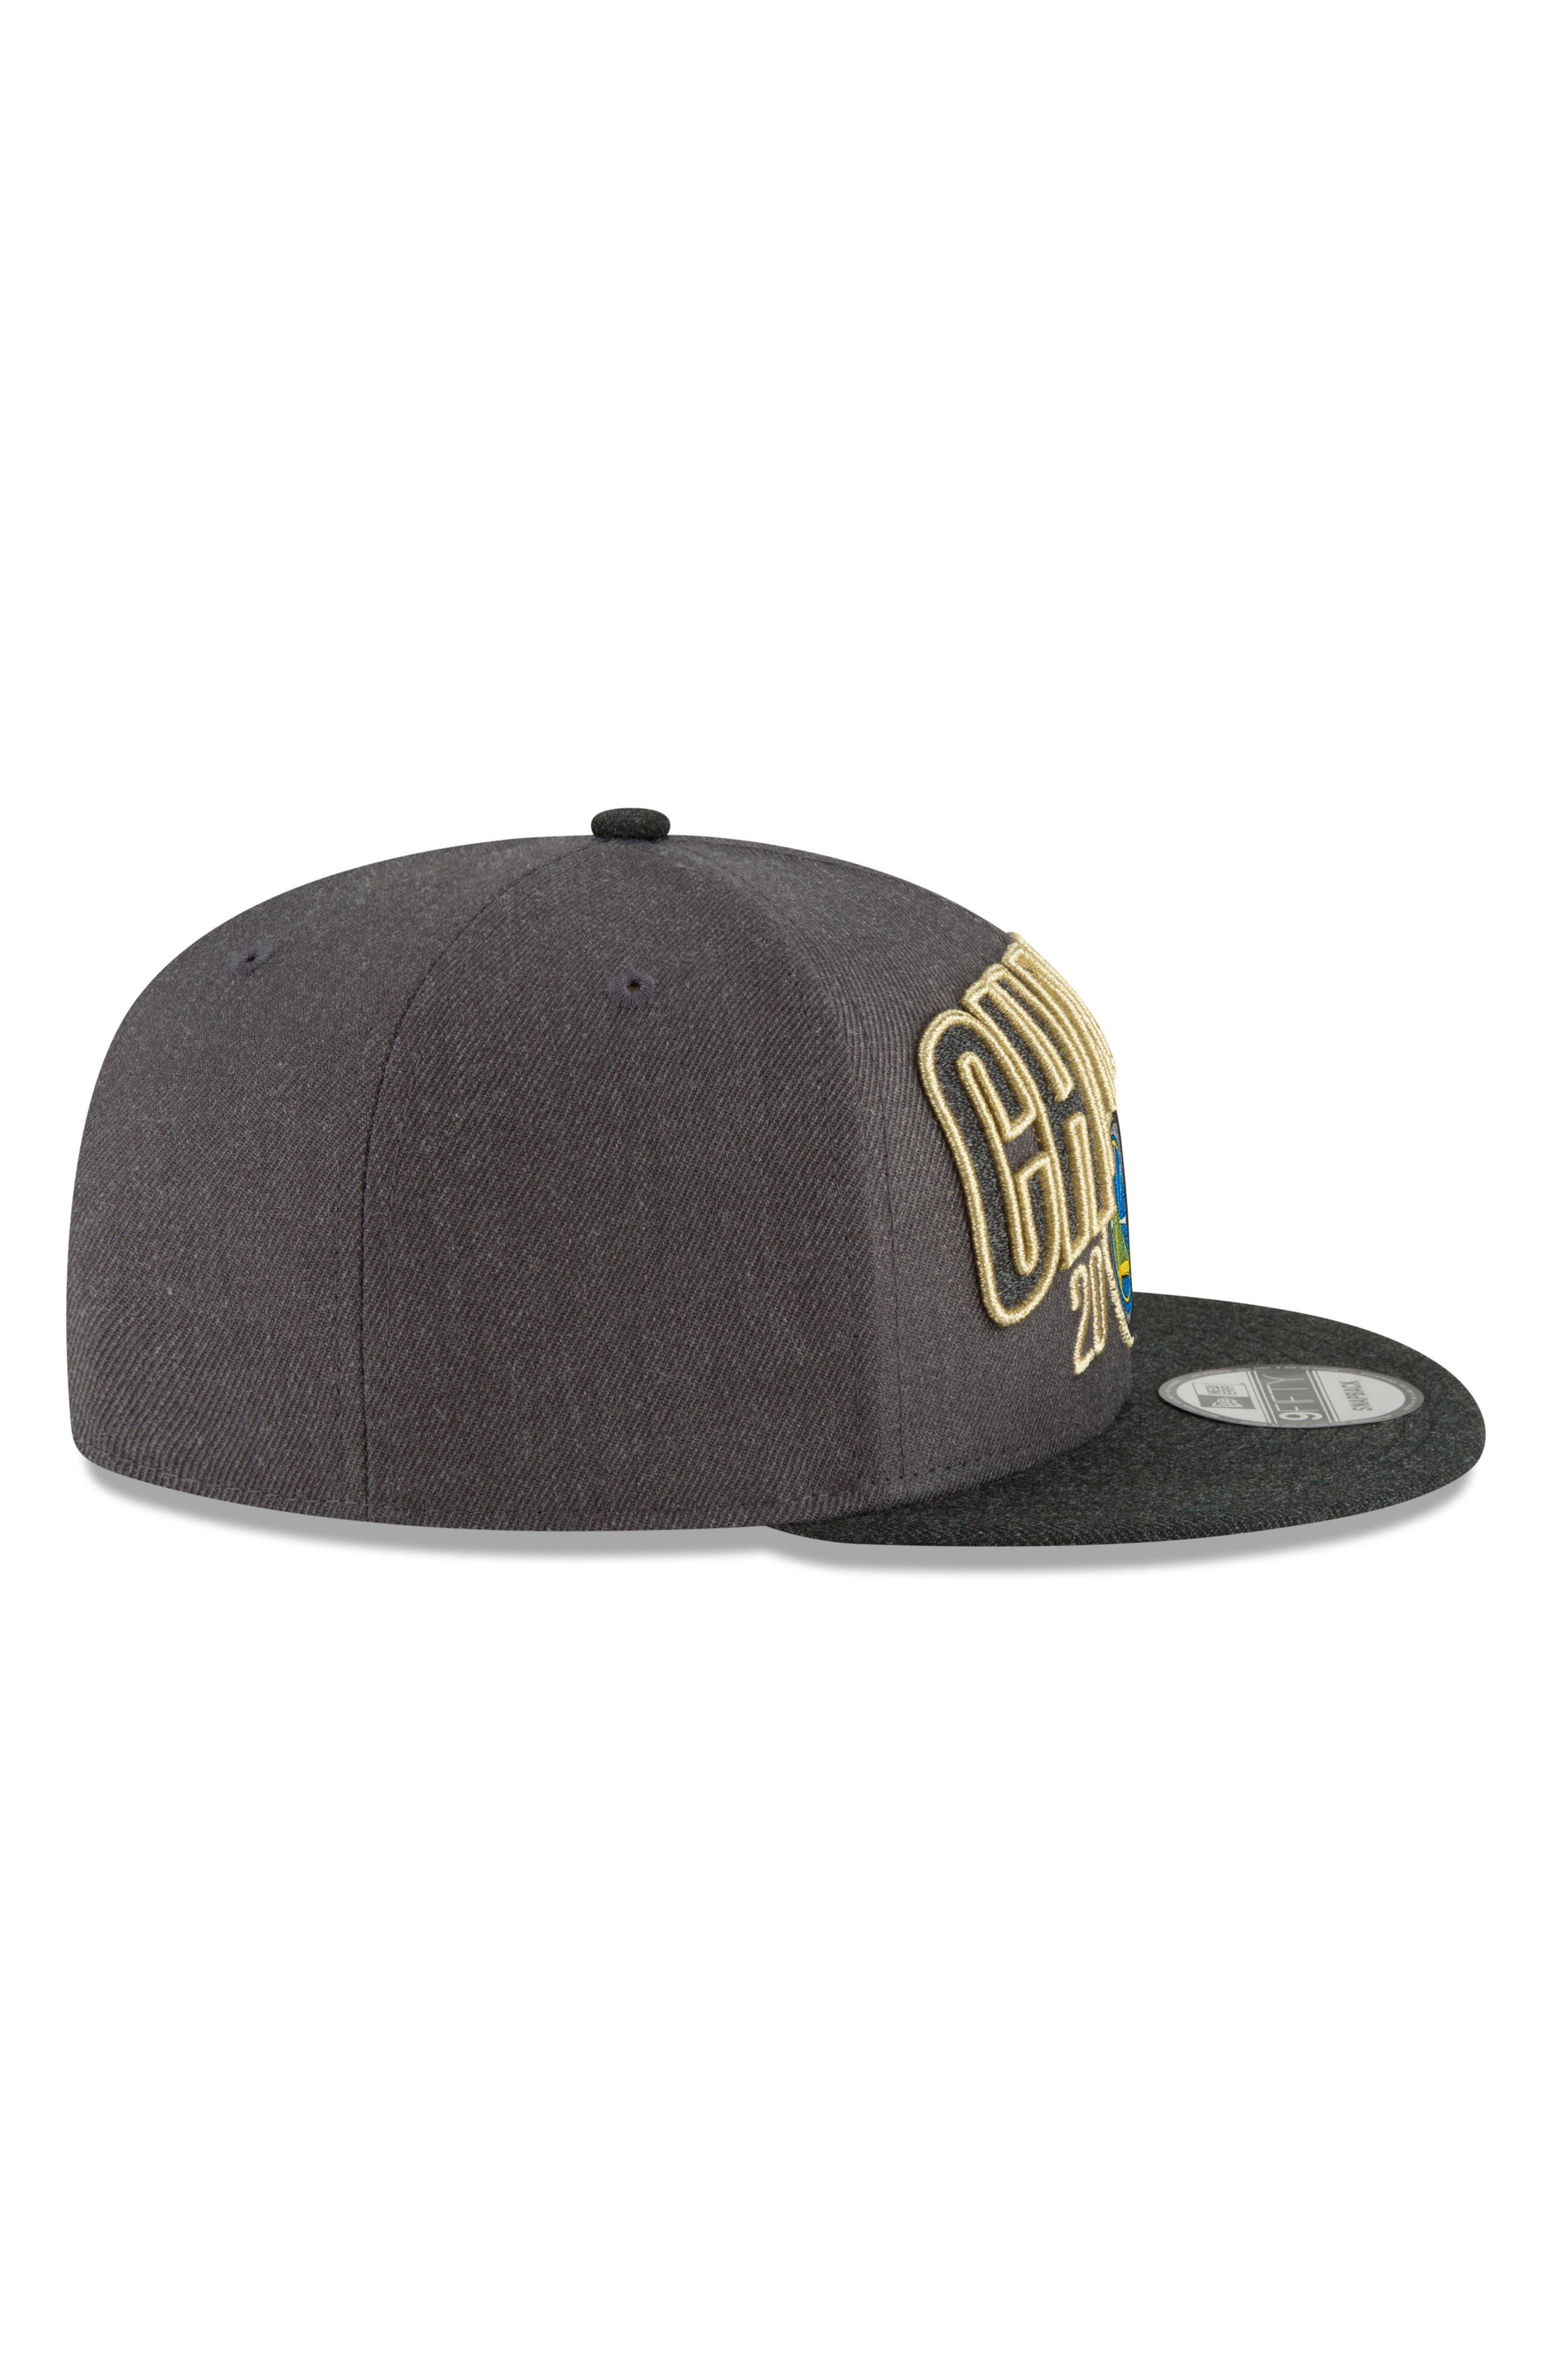 2018 NBA Champions - Golden State Warriors 9Fifty Snapback Cap,                             Alternate thumbnail 5, color,                             030